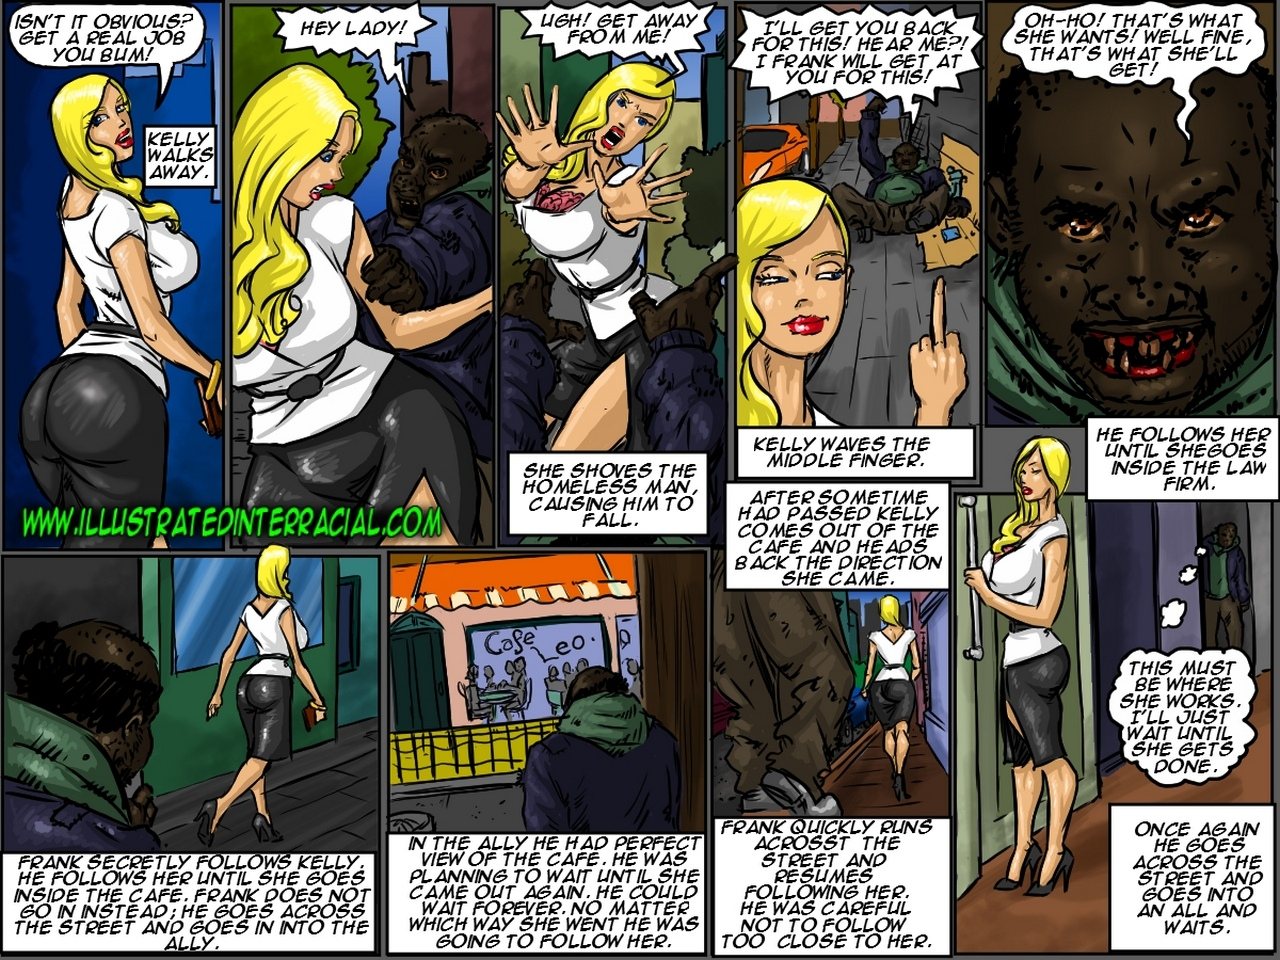 The-Homeless-Man-s-New-Wife 3 free sex comic